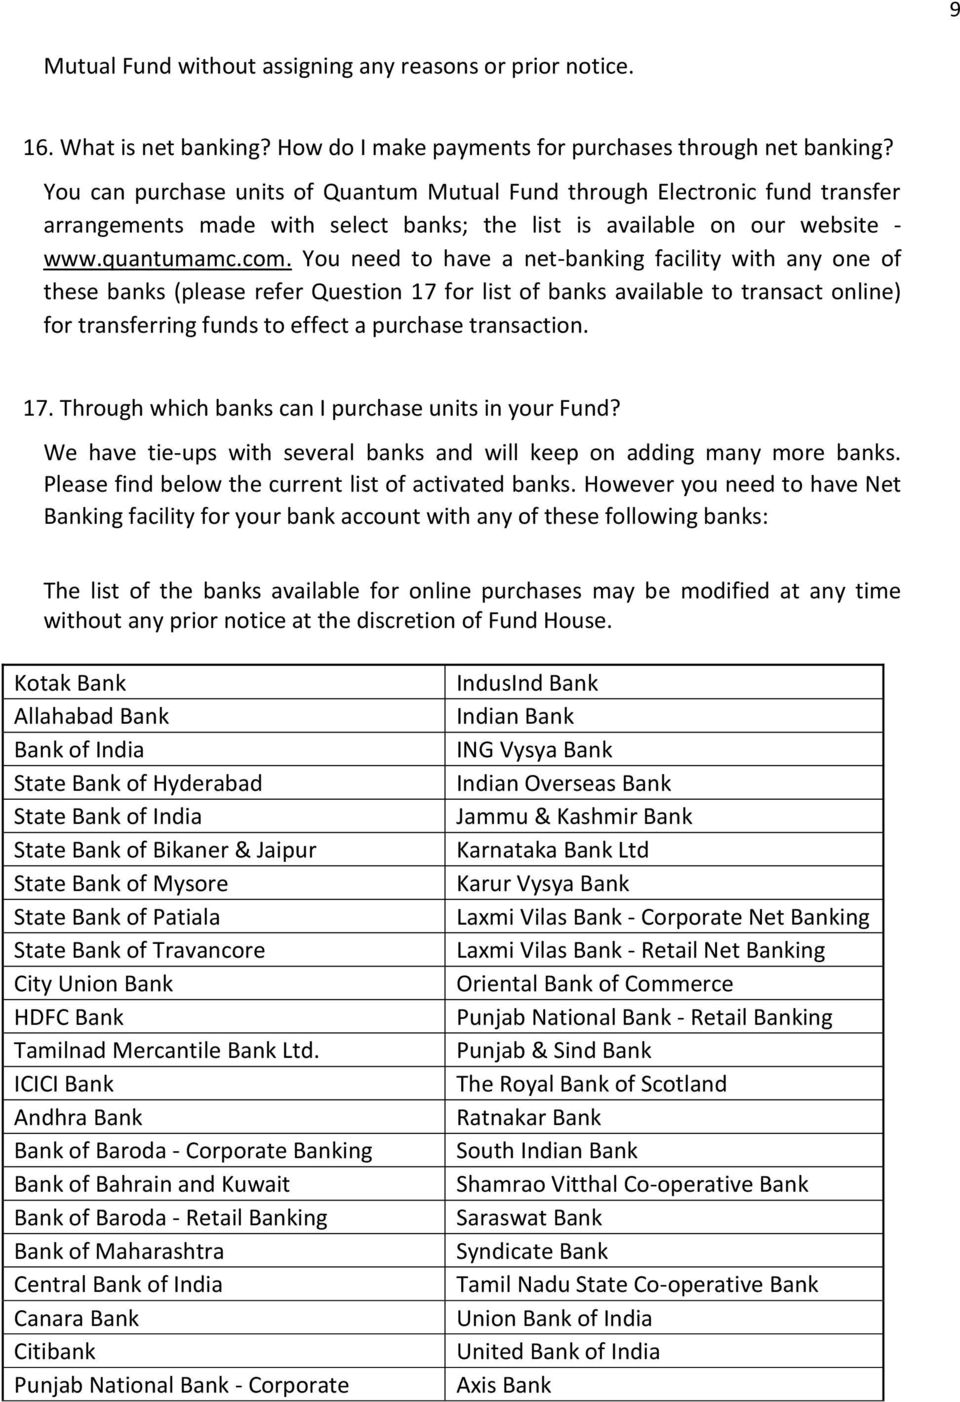 FAQs on Invest Online for QUANTUM MUTUAL FUND - PDF